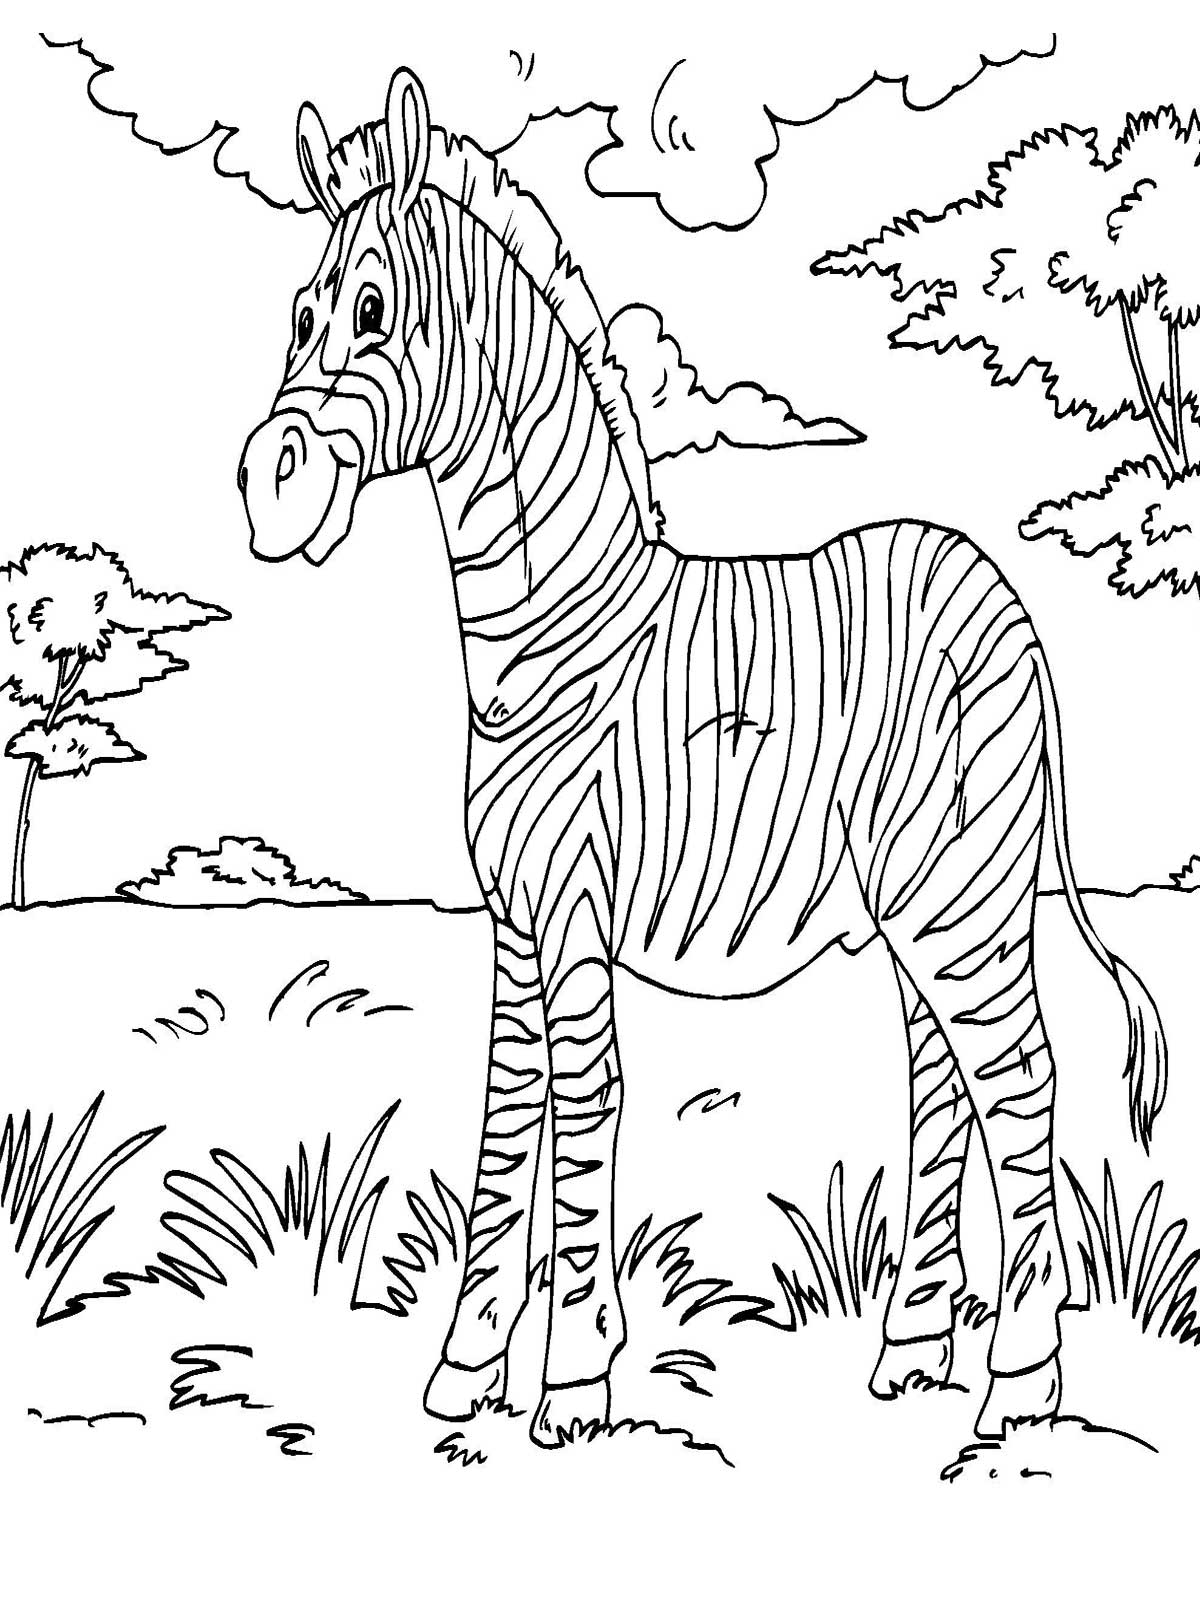 zebra coloring pages without stripes - photo #35